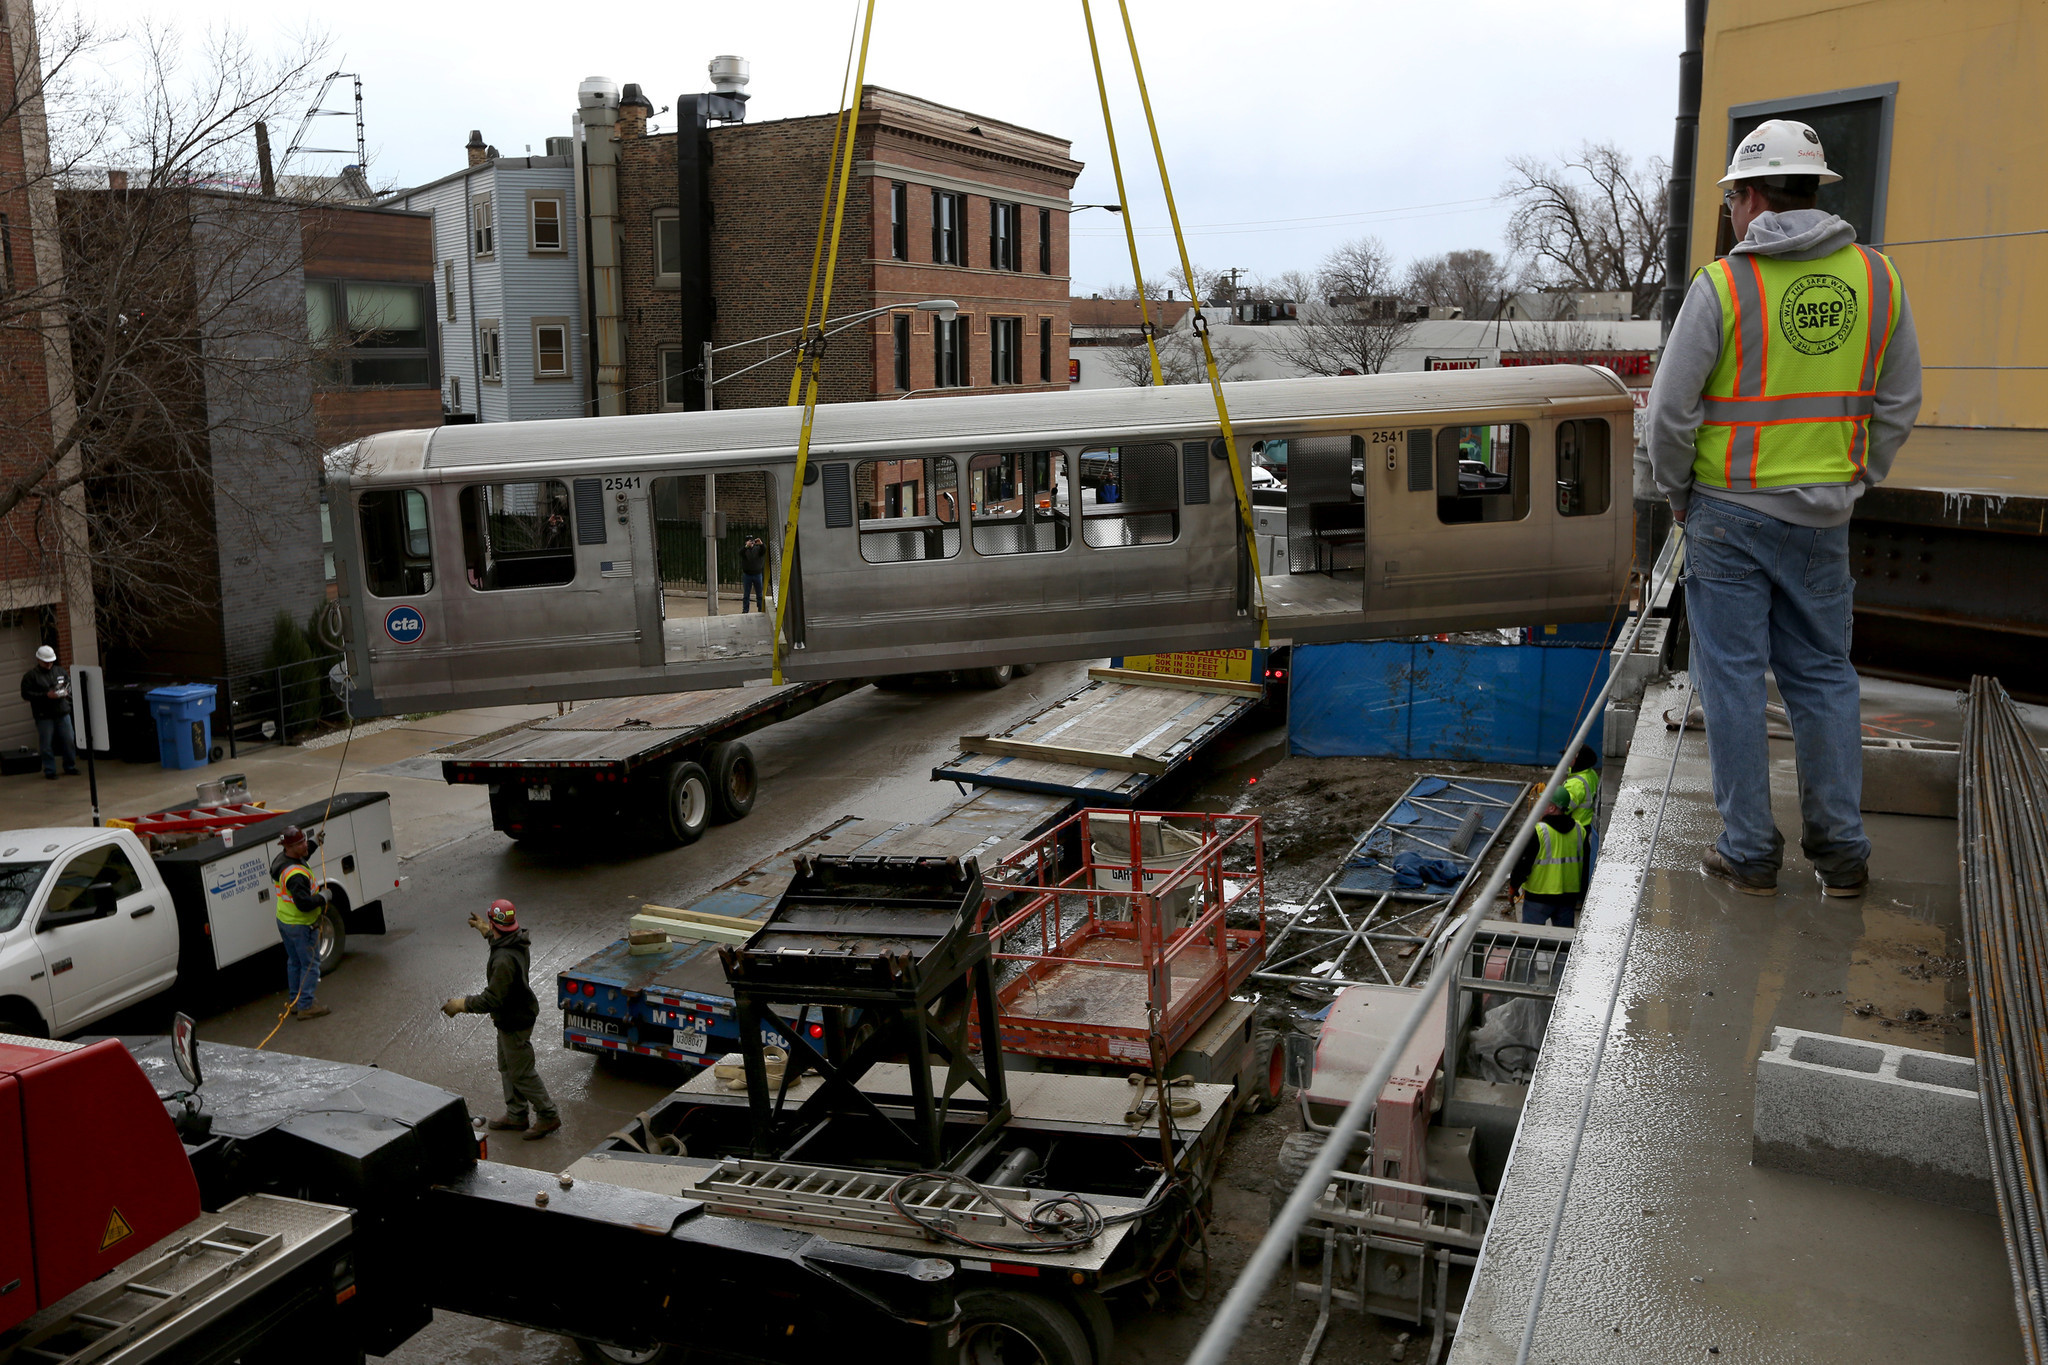 A Cta L Car Destined To Become A Rooftop Lounge